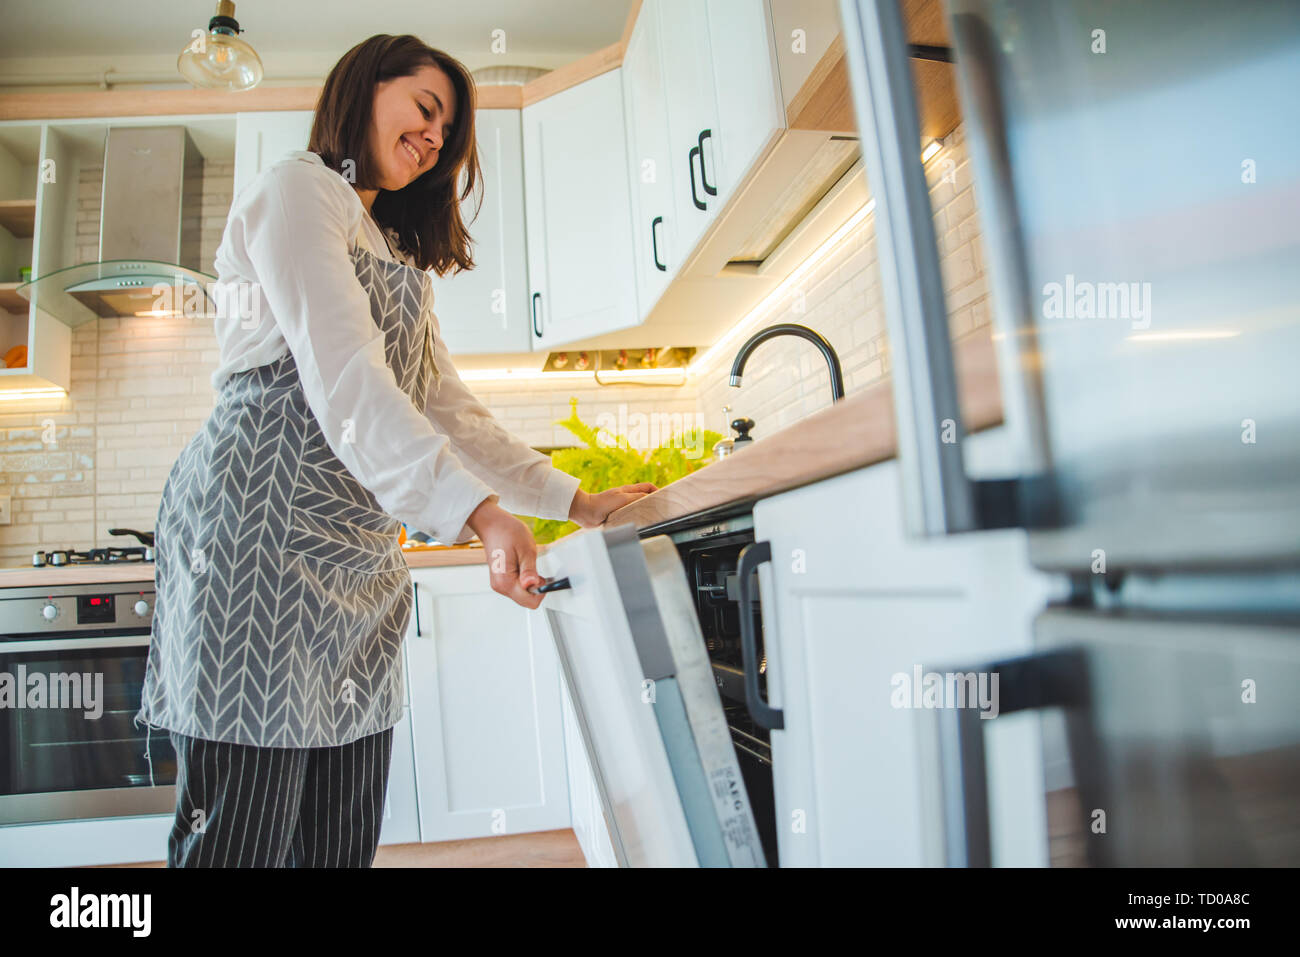 young pretty woman putting dishes in dishwasher Stock Photo